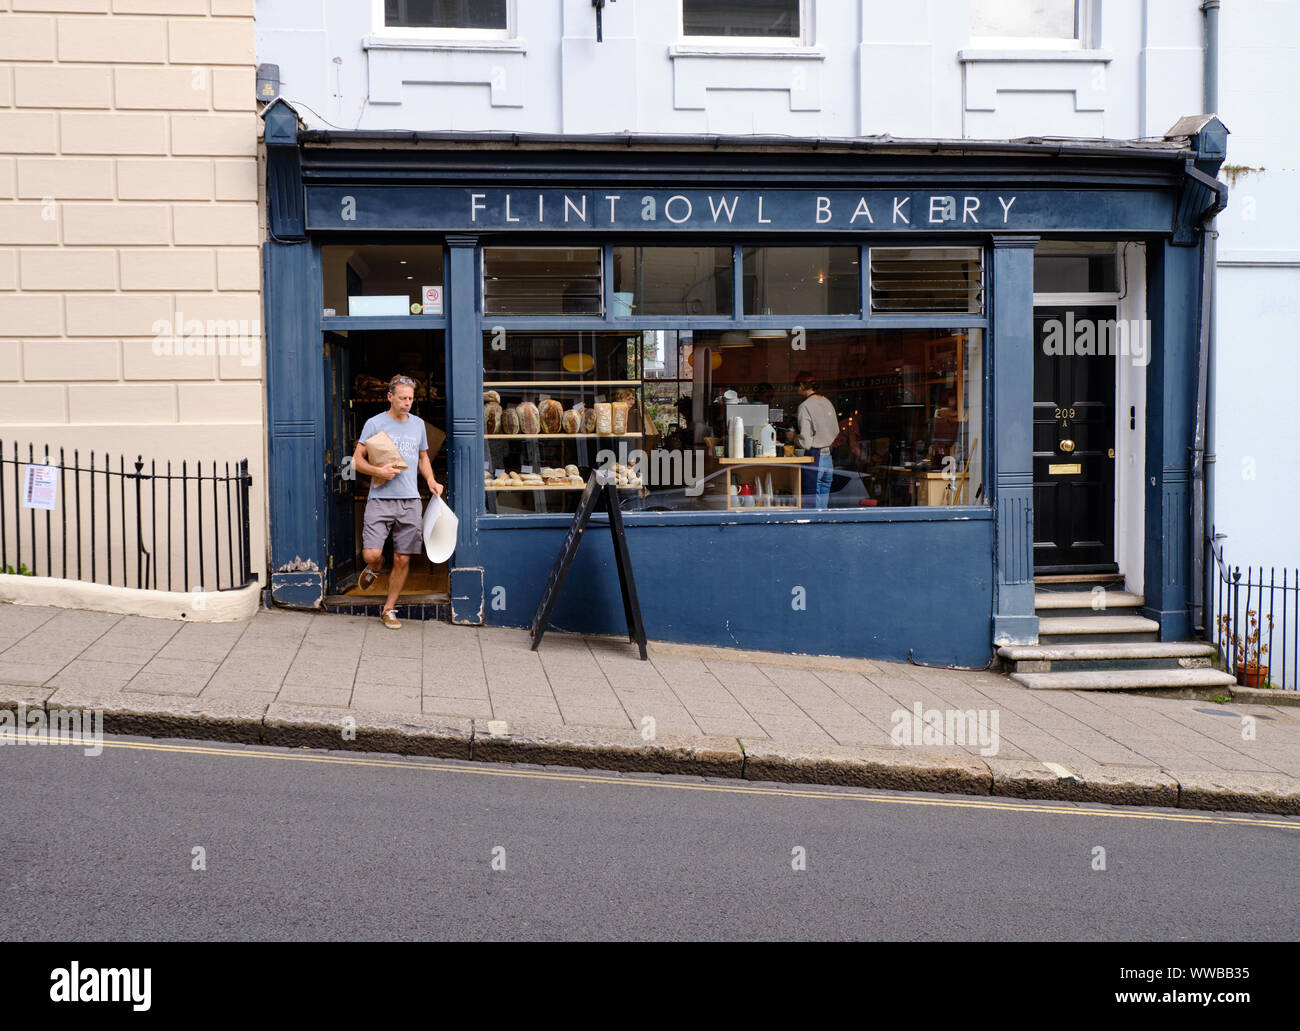 person-coming-out-of-flint-owl-bakery-on-inclined-high-street-lewes-carrying-bread-purchase-from-establishment-lewes-uk-september-2019-WWBB35.jpg